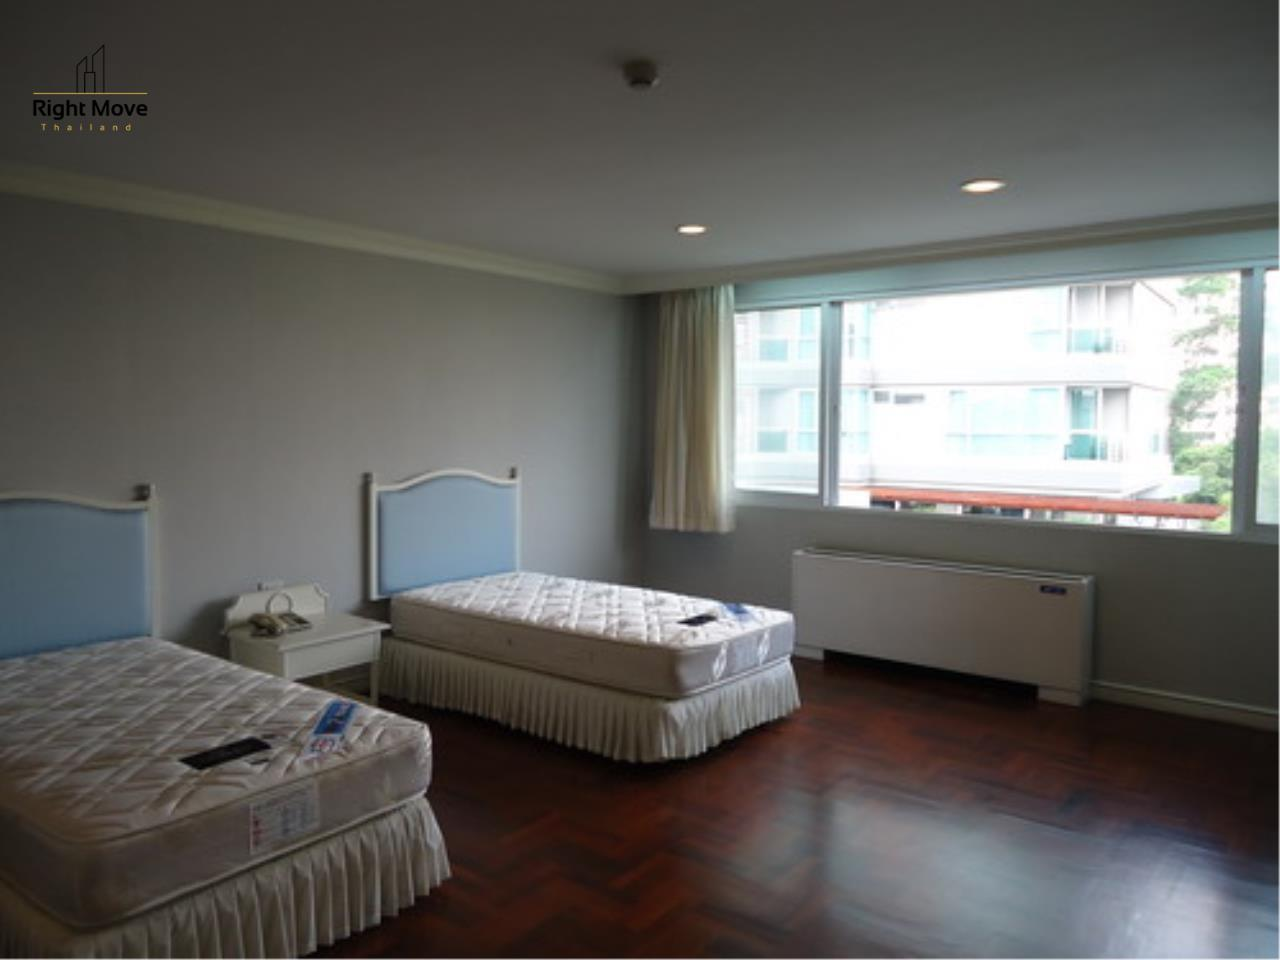 Right Move Thailand Agency's CA3559 Penthouse Duplex For Rent 150,000 THB 4+1 Bedrooms 600 Sqm 7